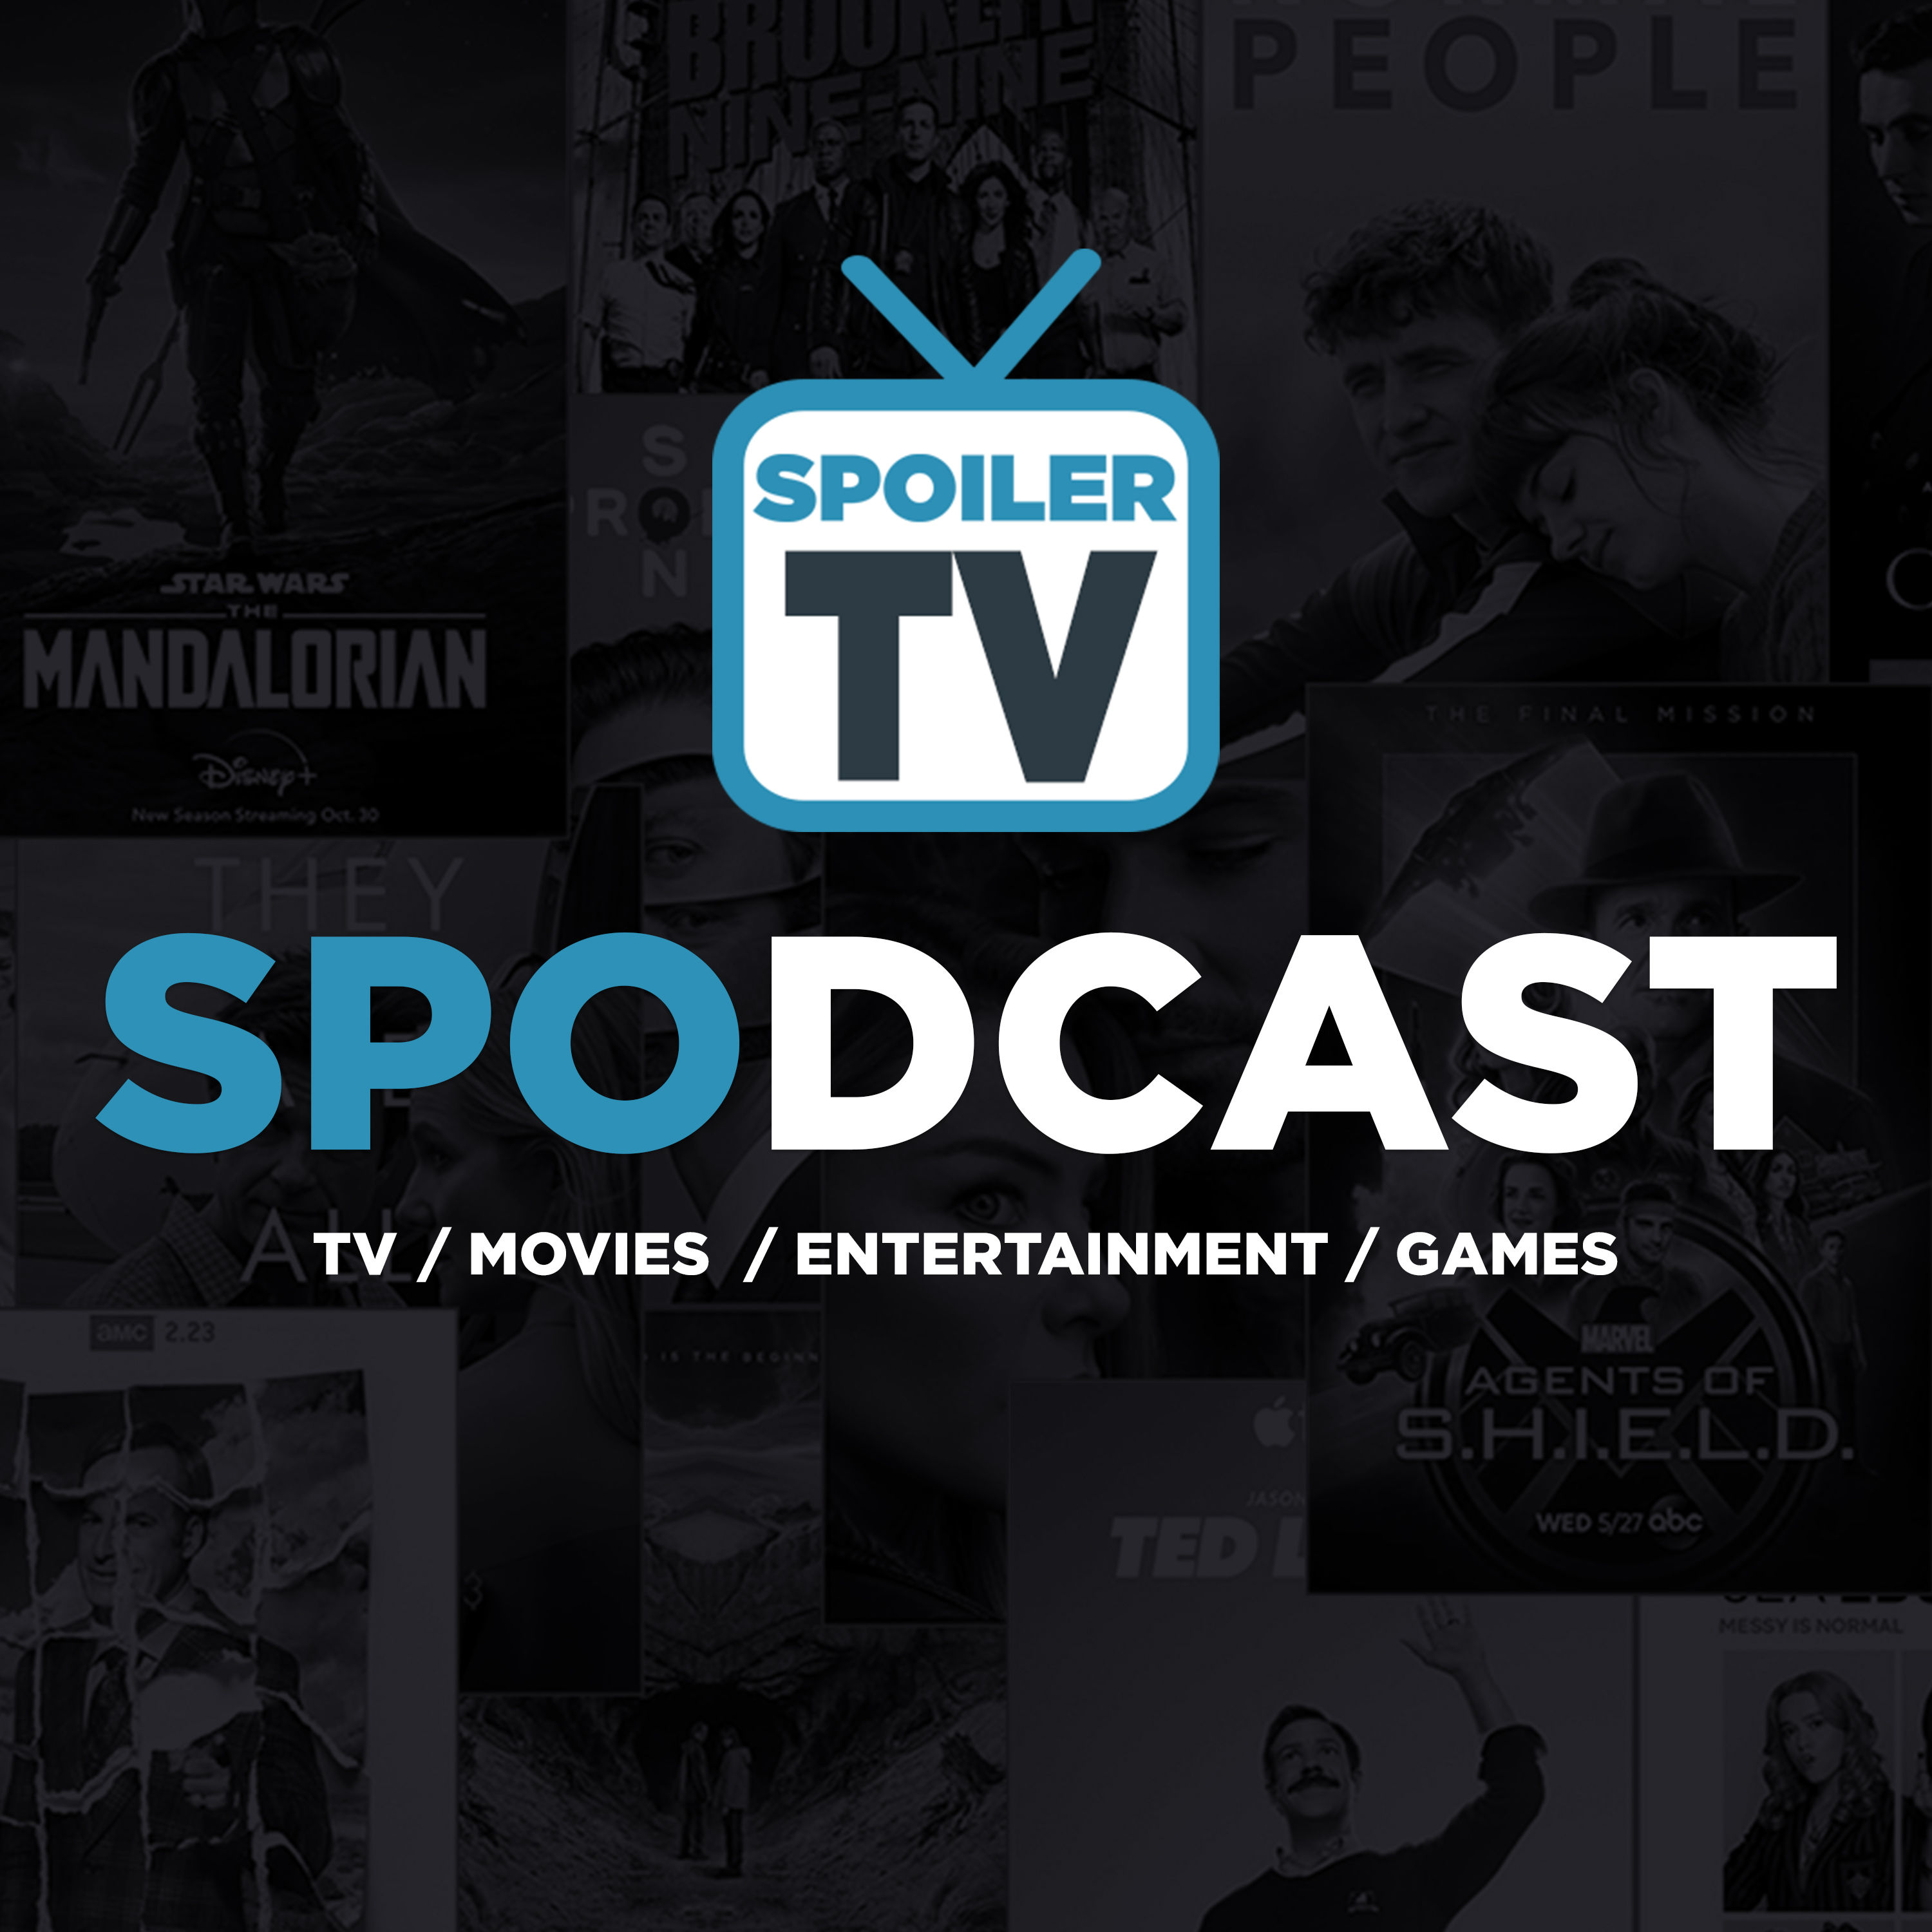 Spodcast - TV, Movie, Entertainment and Game News from SpoilerTV